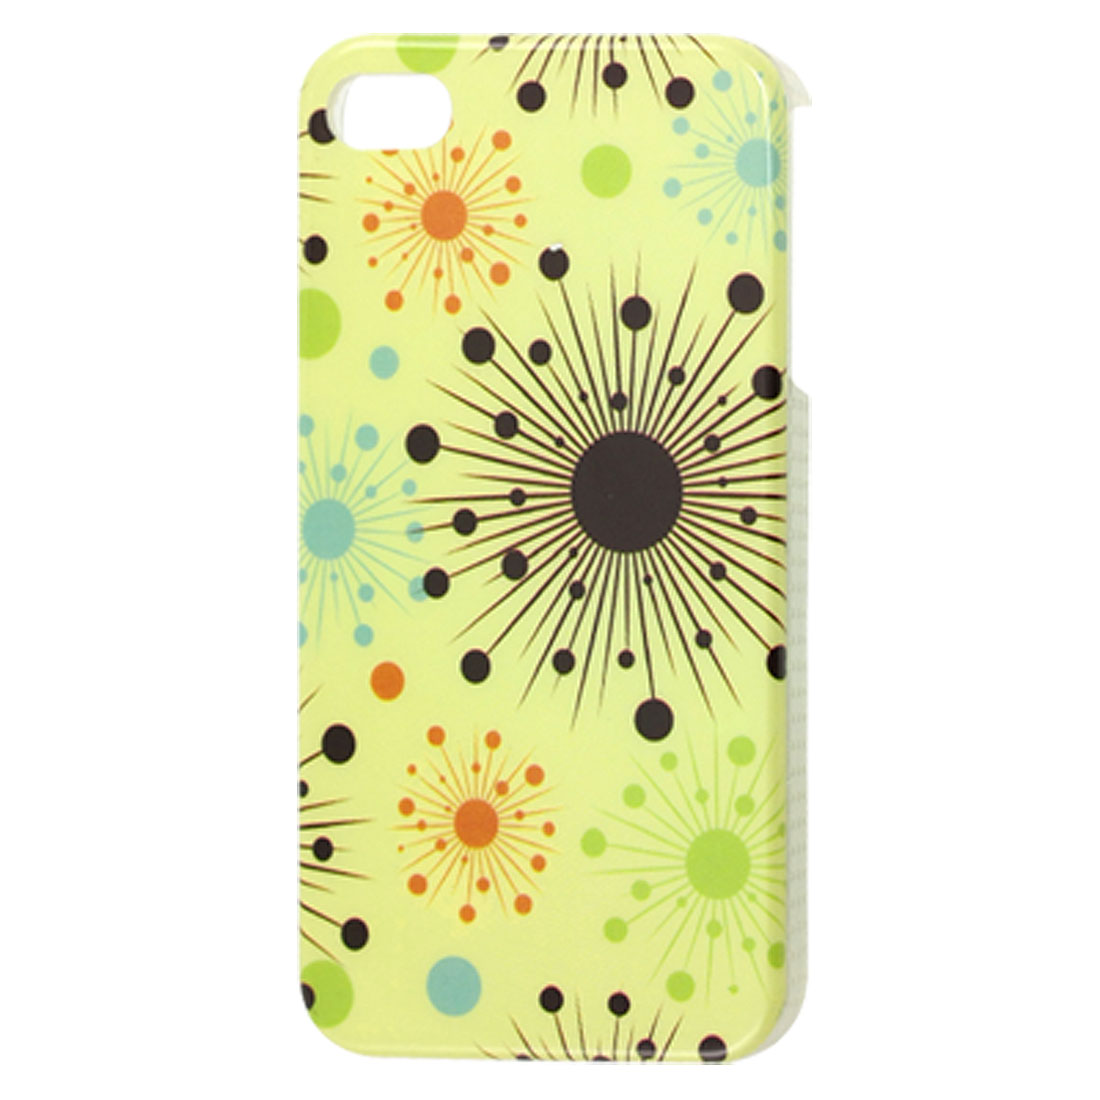 Colored Multi Circles Print Hard Plastic Back Case for iPhone 4 4G 4S